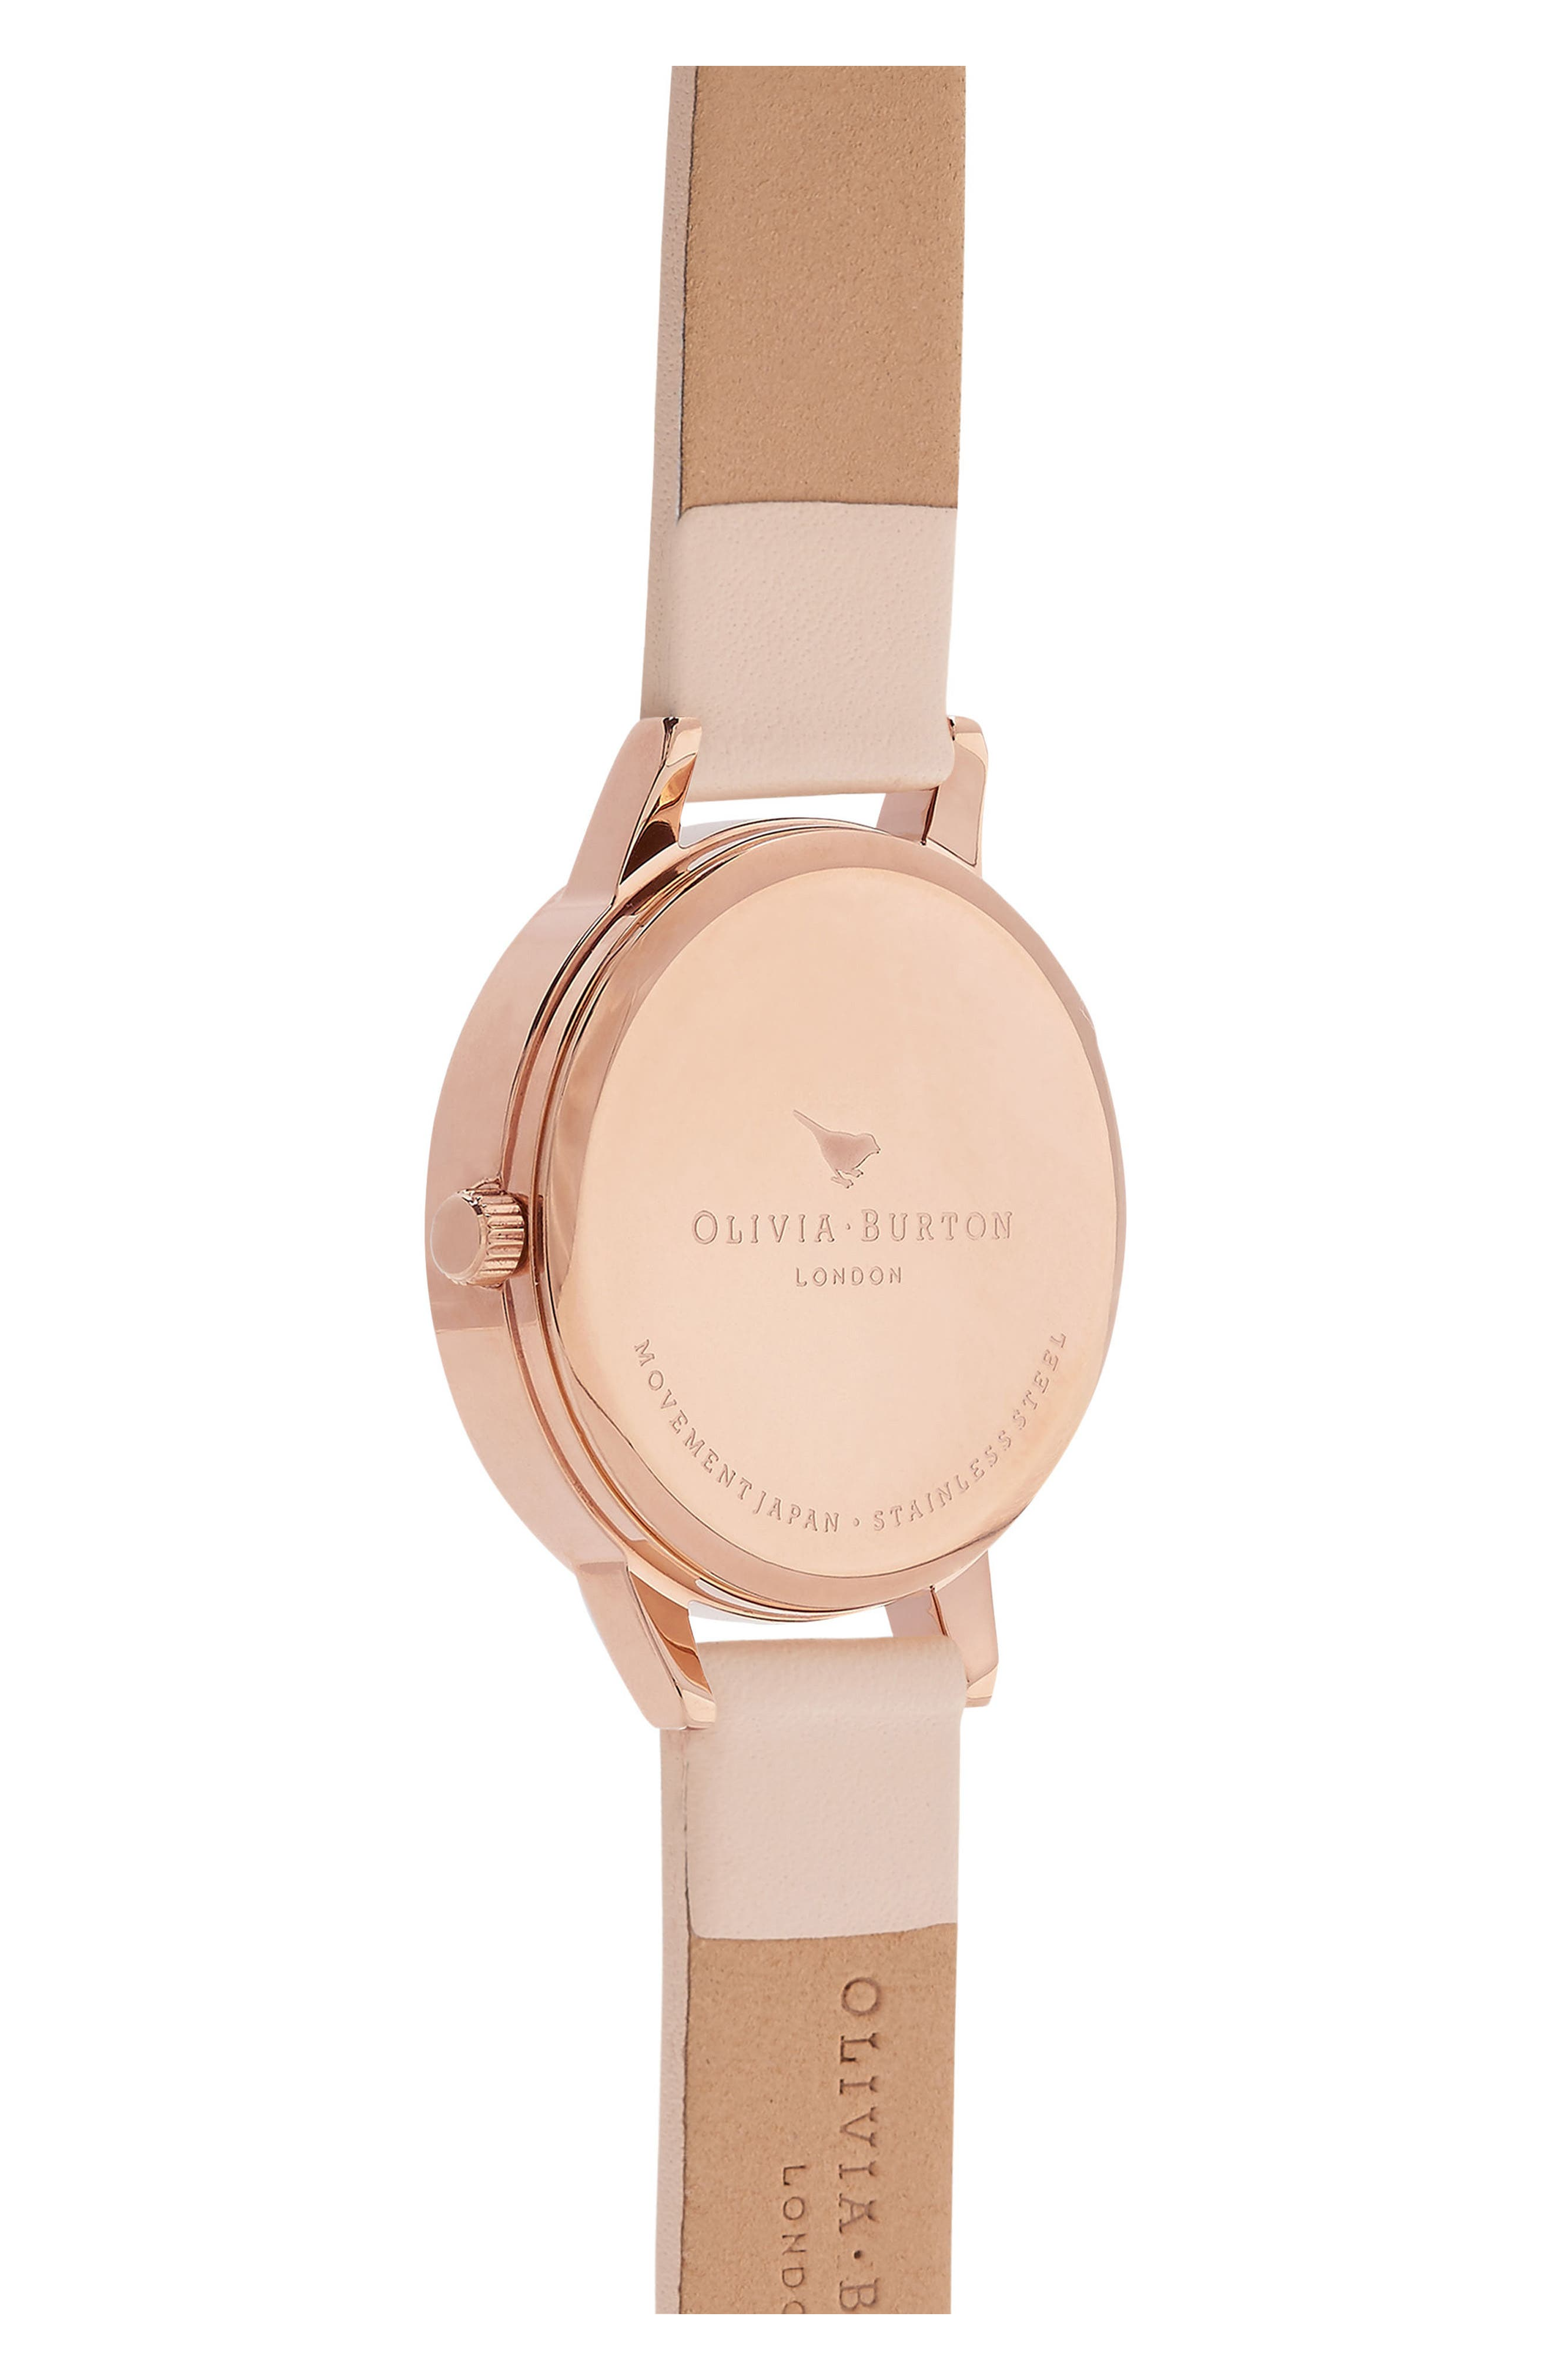 OLIVIA BURTON,                             Midi Dial Leather Strap Watch, 30mm,                             Alternate thumbnail 2, color,                             NUDE PEACH/ WHITE/ ROSE GOLD